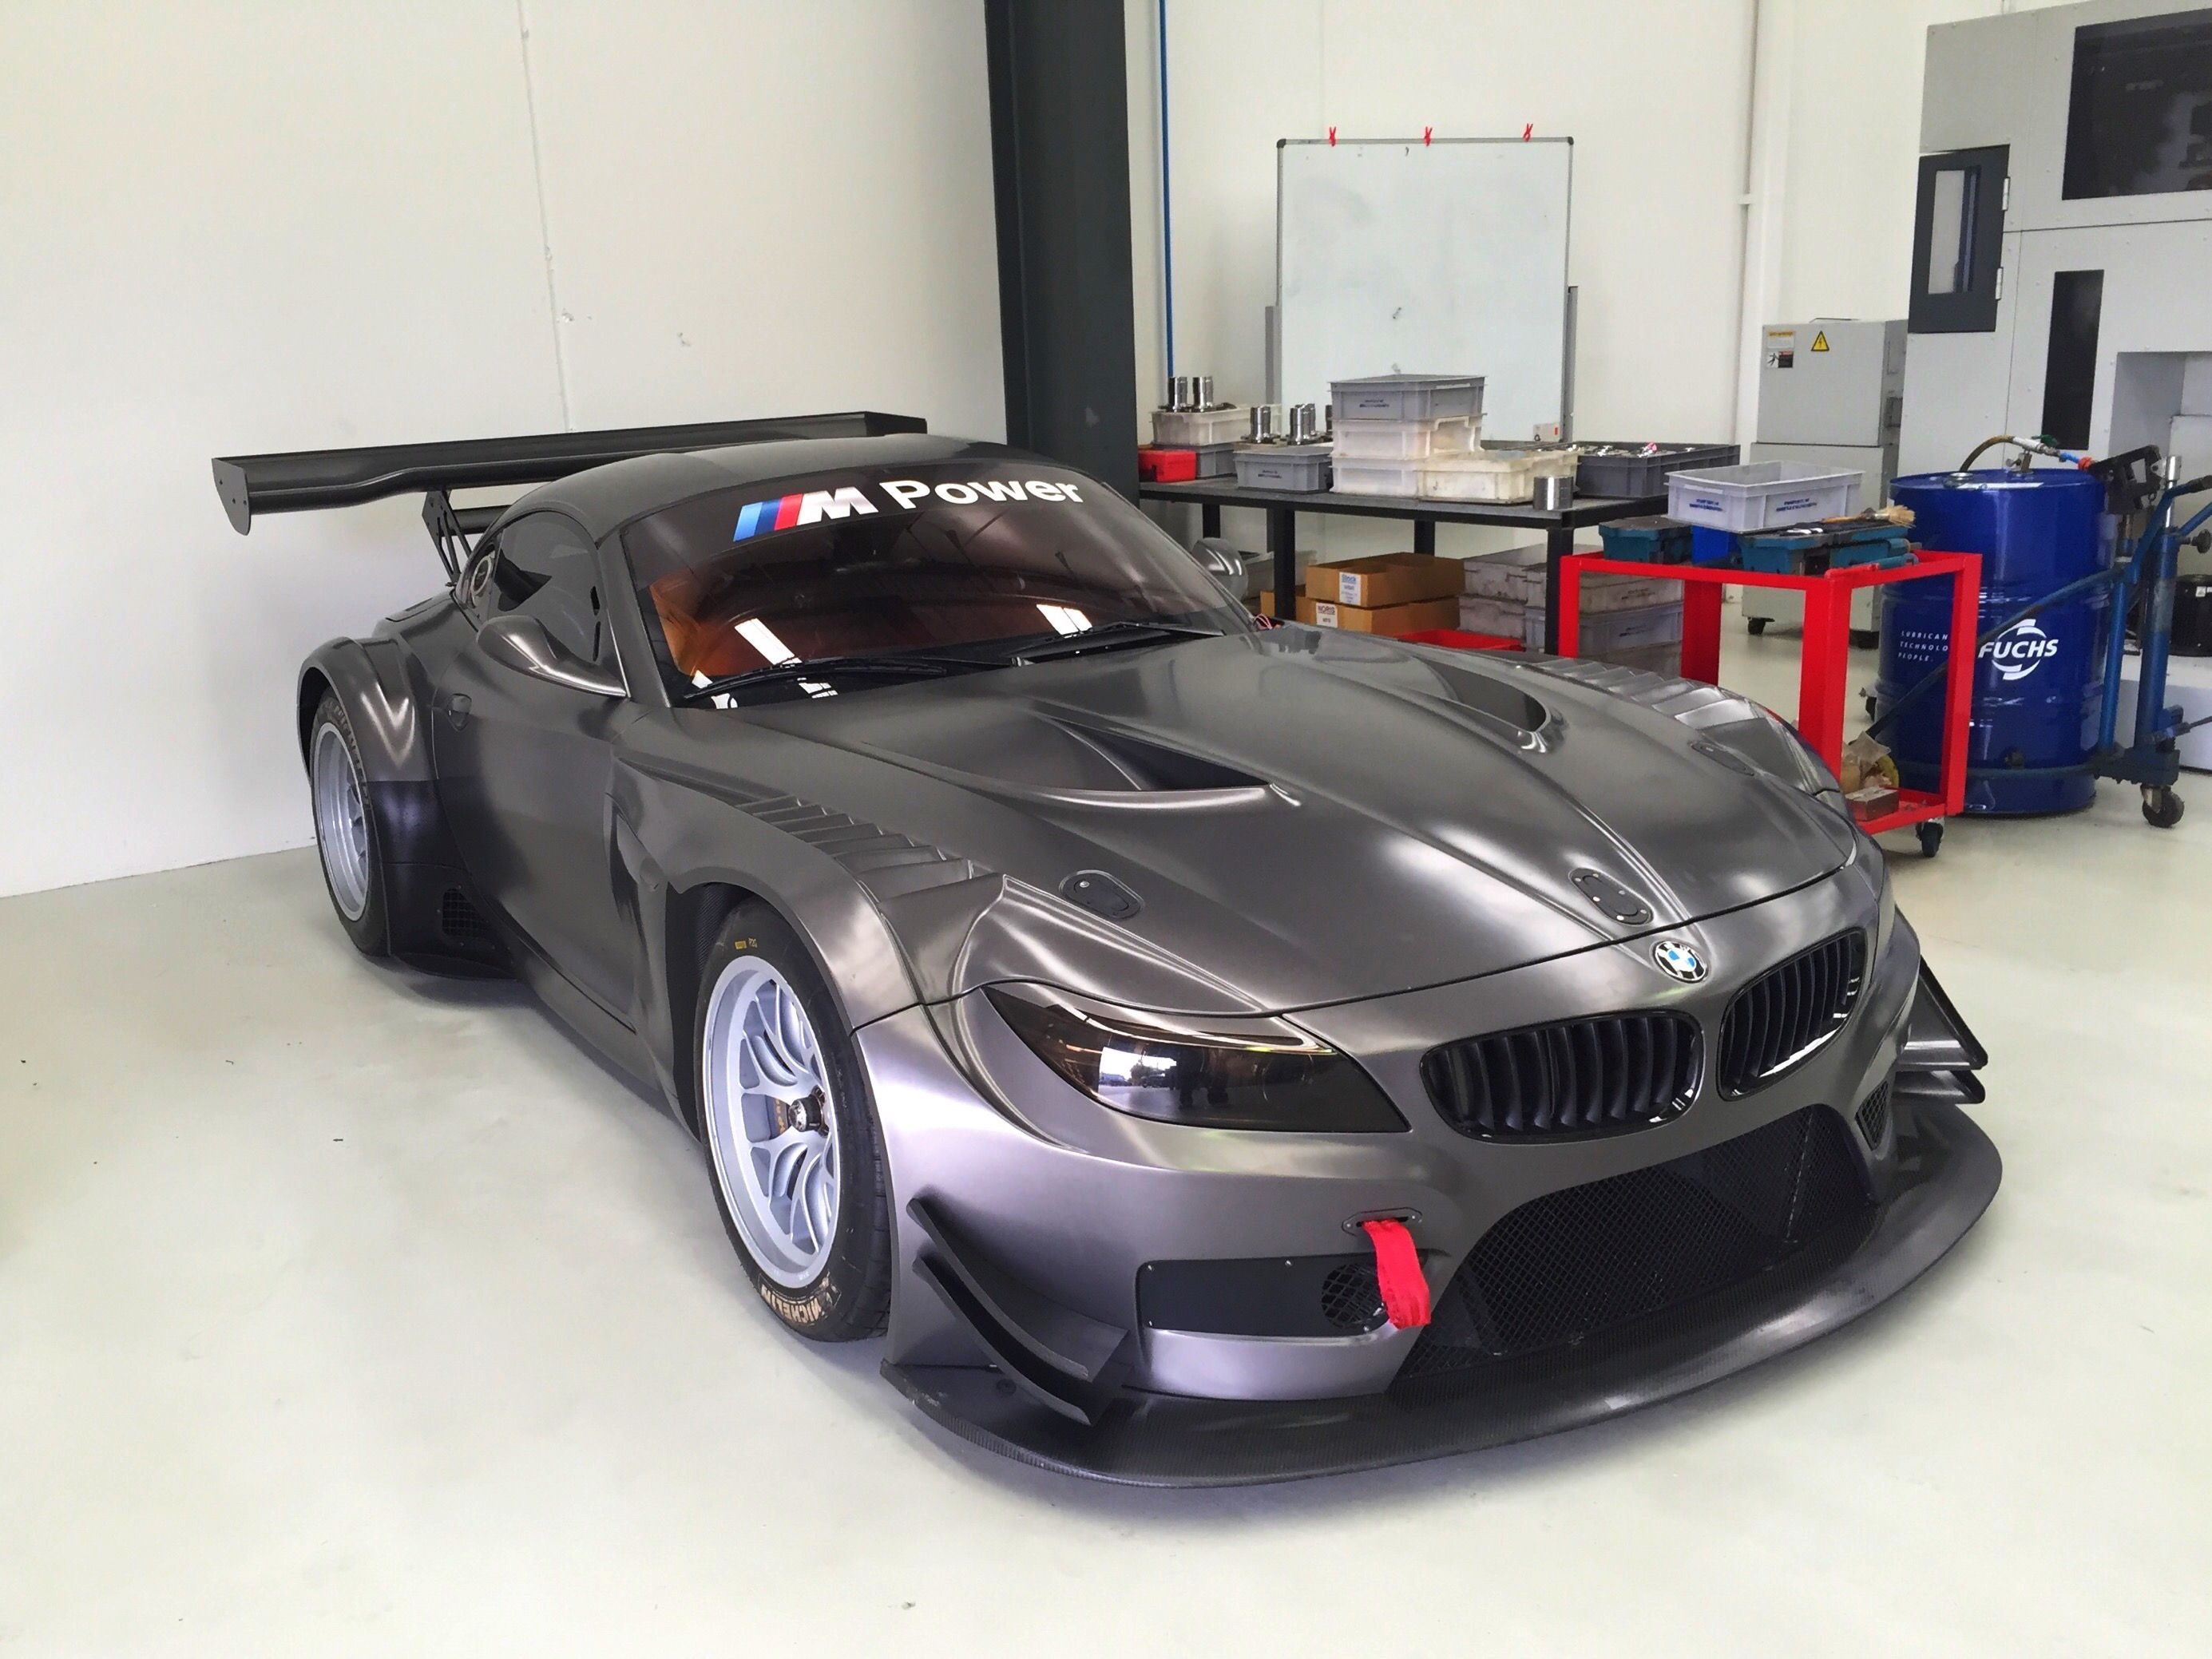 The Bmw Z4 Gt3 I Will Be Competing In The Australian Gt